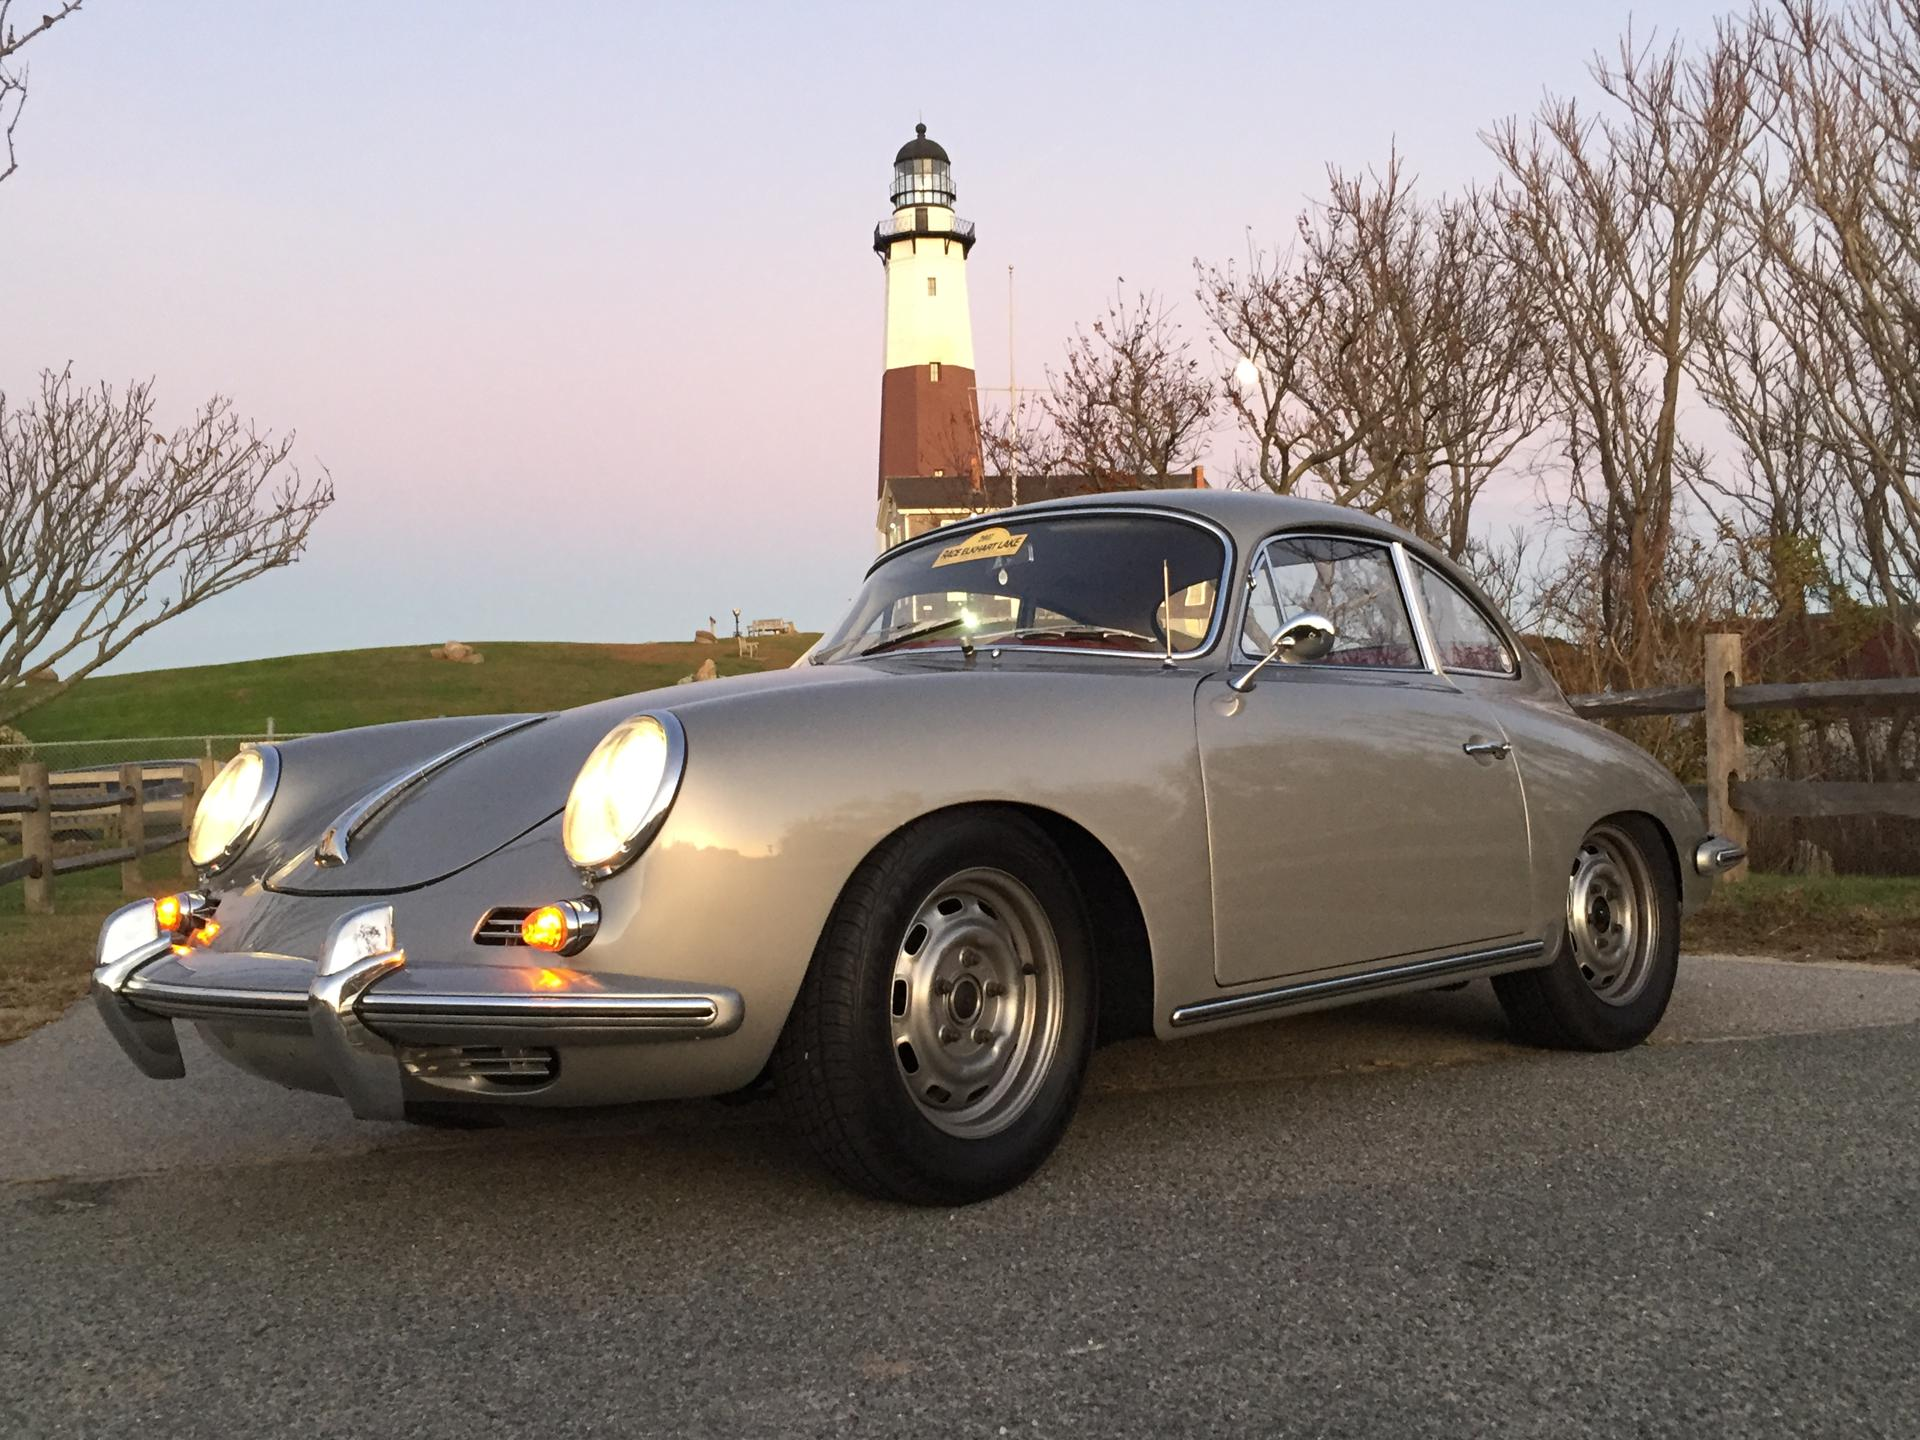 Shining Bright: Brundage's 356 at the Montauk Lighthouse. She's already put more than 7,000 miles on the car this year.